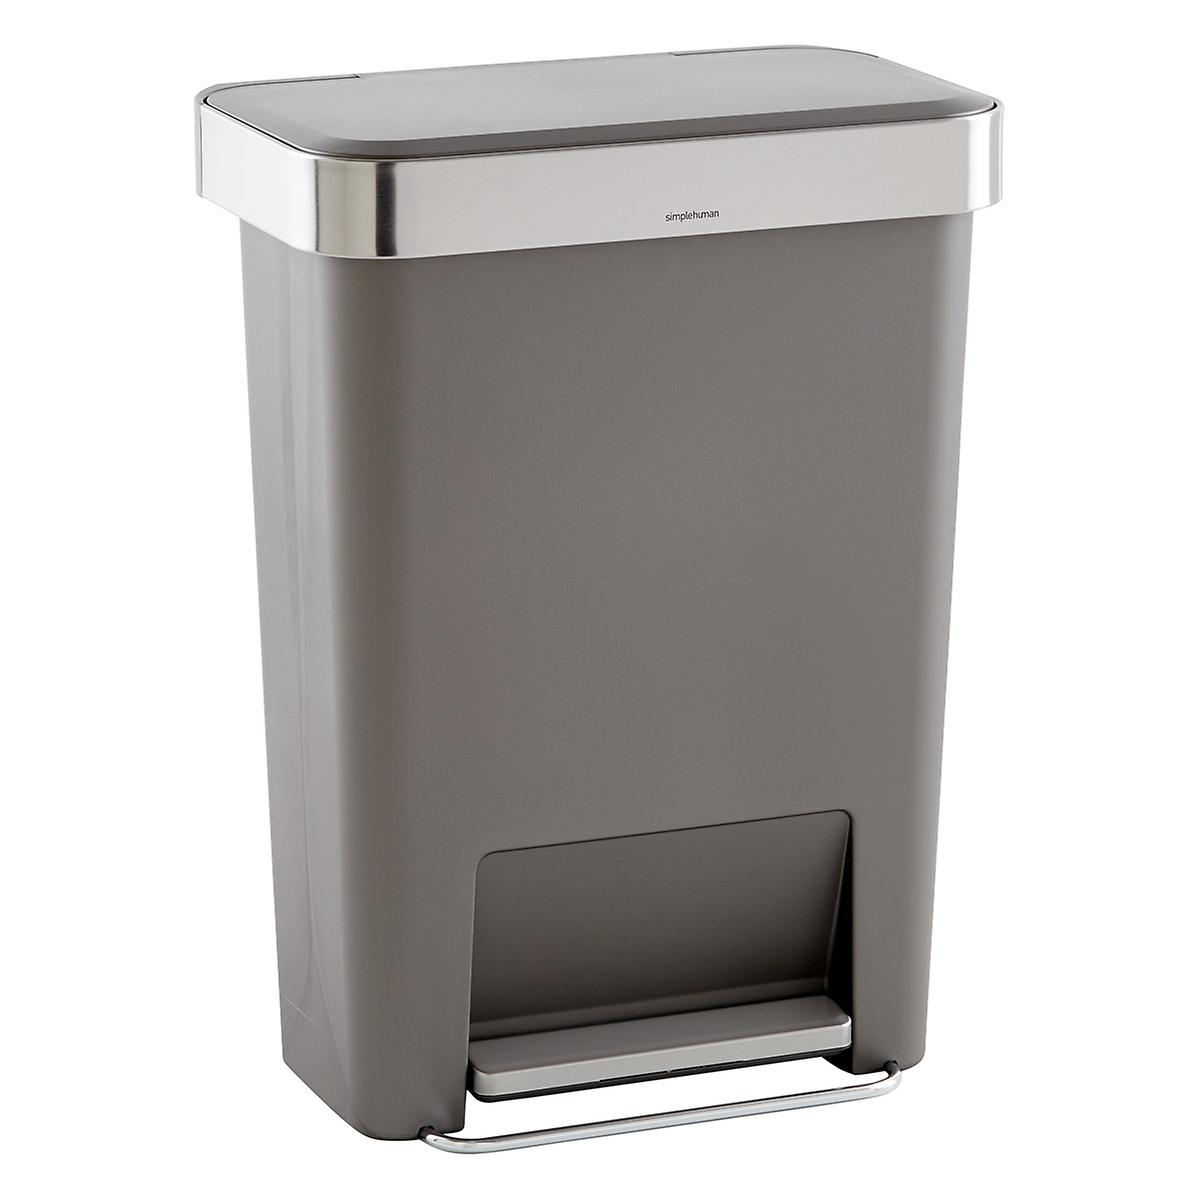 Simplehuman grey 12 gal rectangular trash can with liner pocket the container store - Rectangular garbage cans ...